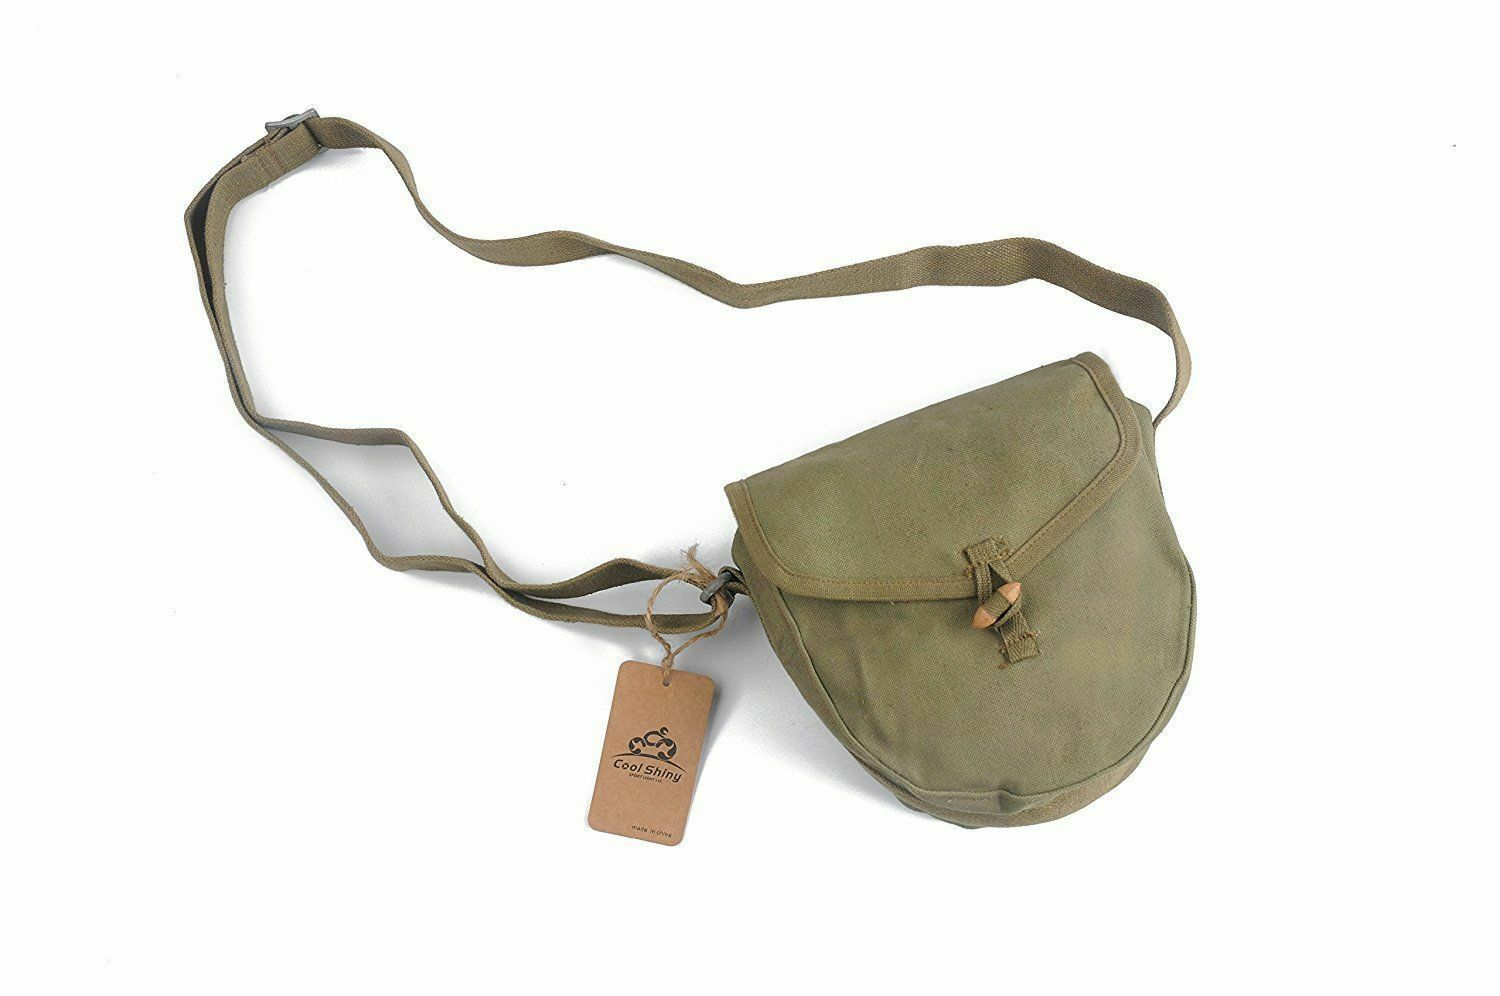 ORIGINAL SURPLUS VIETNAM WAR PERIOD CHINESE DRUM MAG ARMY AMMO POUCH COLLECTION MILITARY WAR REENACTMENTS(China)